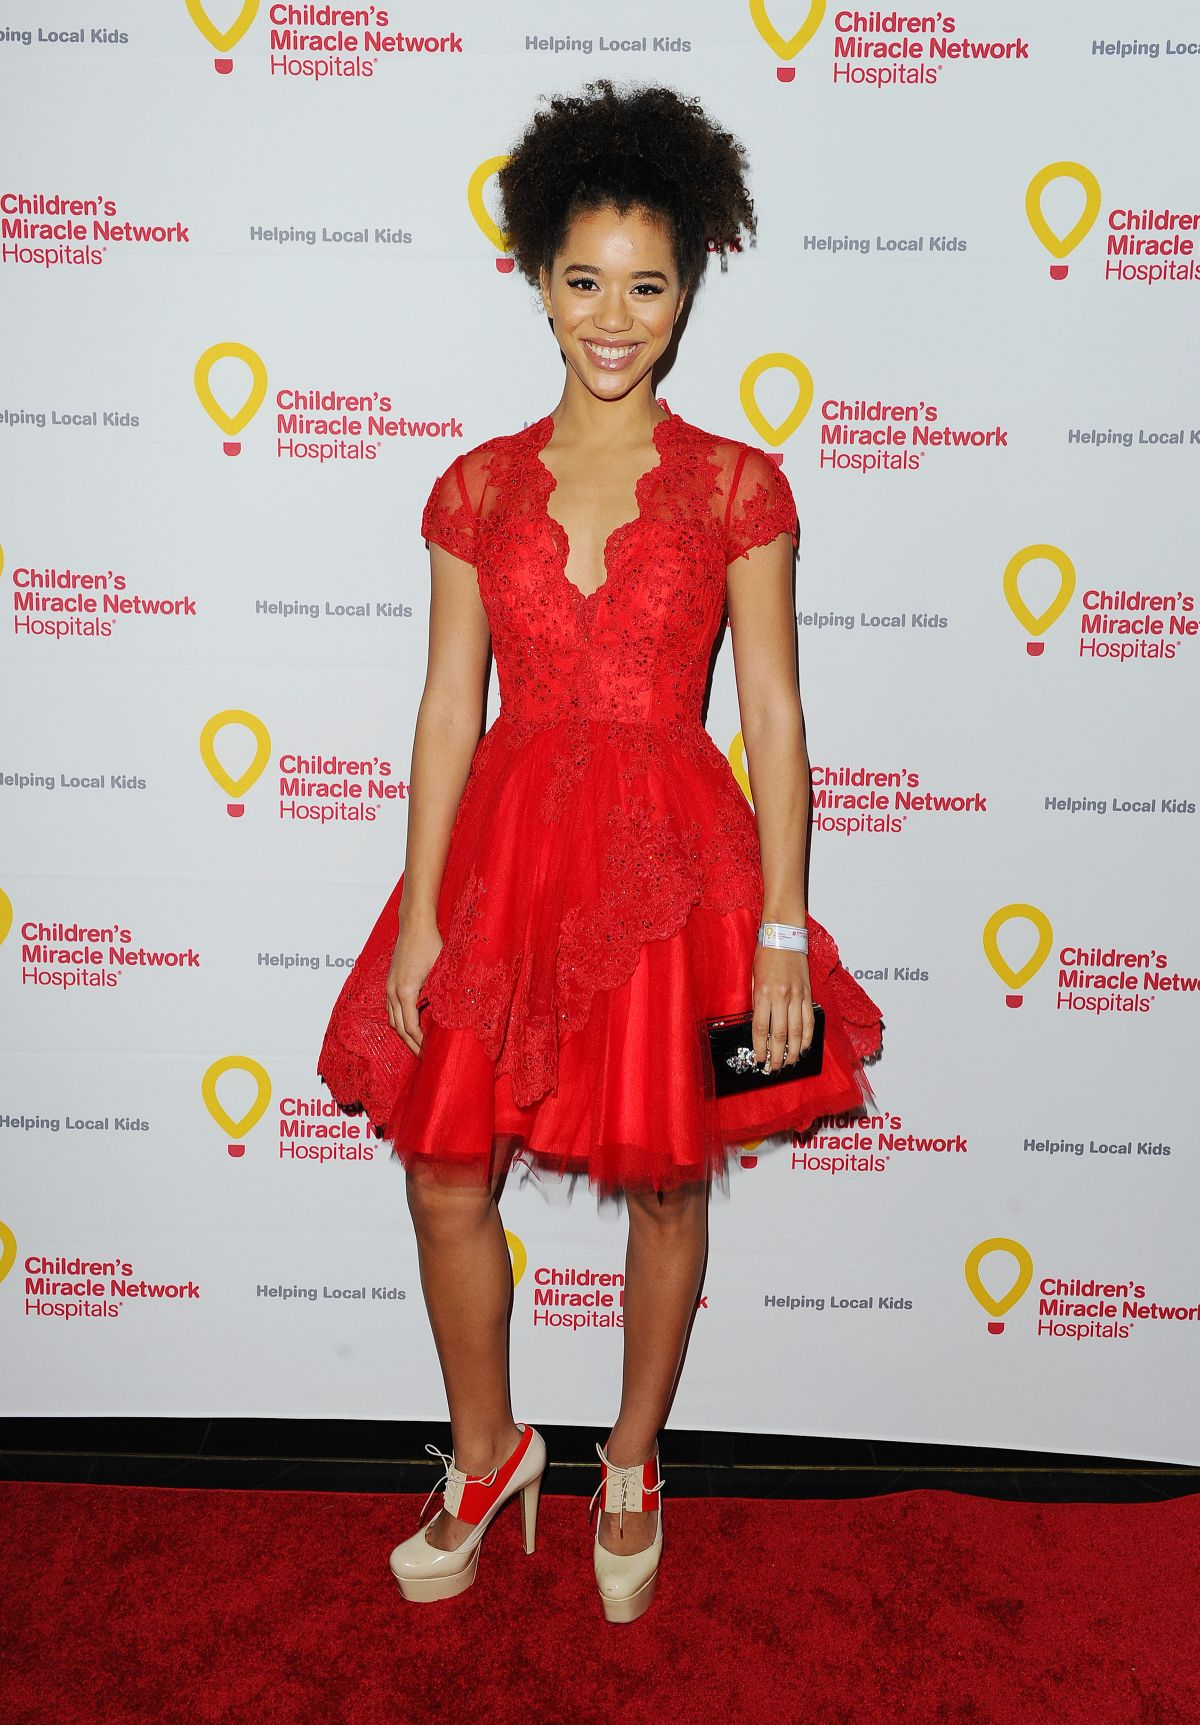 JASMIN SAVOY at Children's Miracle Network Hospital's Winter Wonterland Ball in Hollywood 12/12/2015